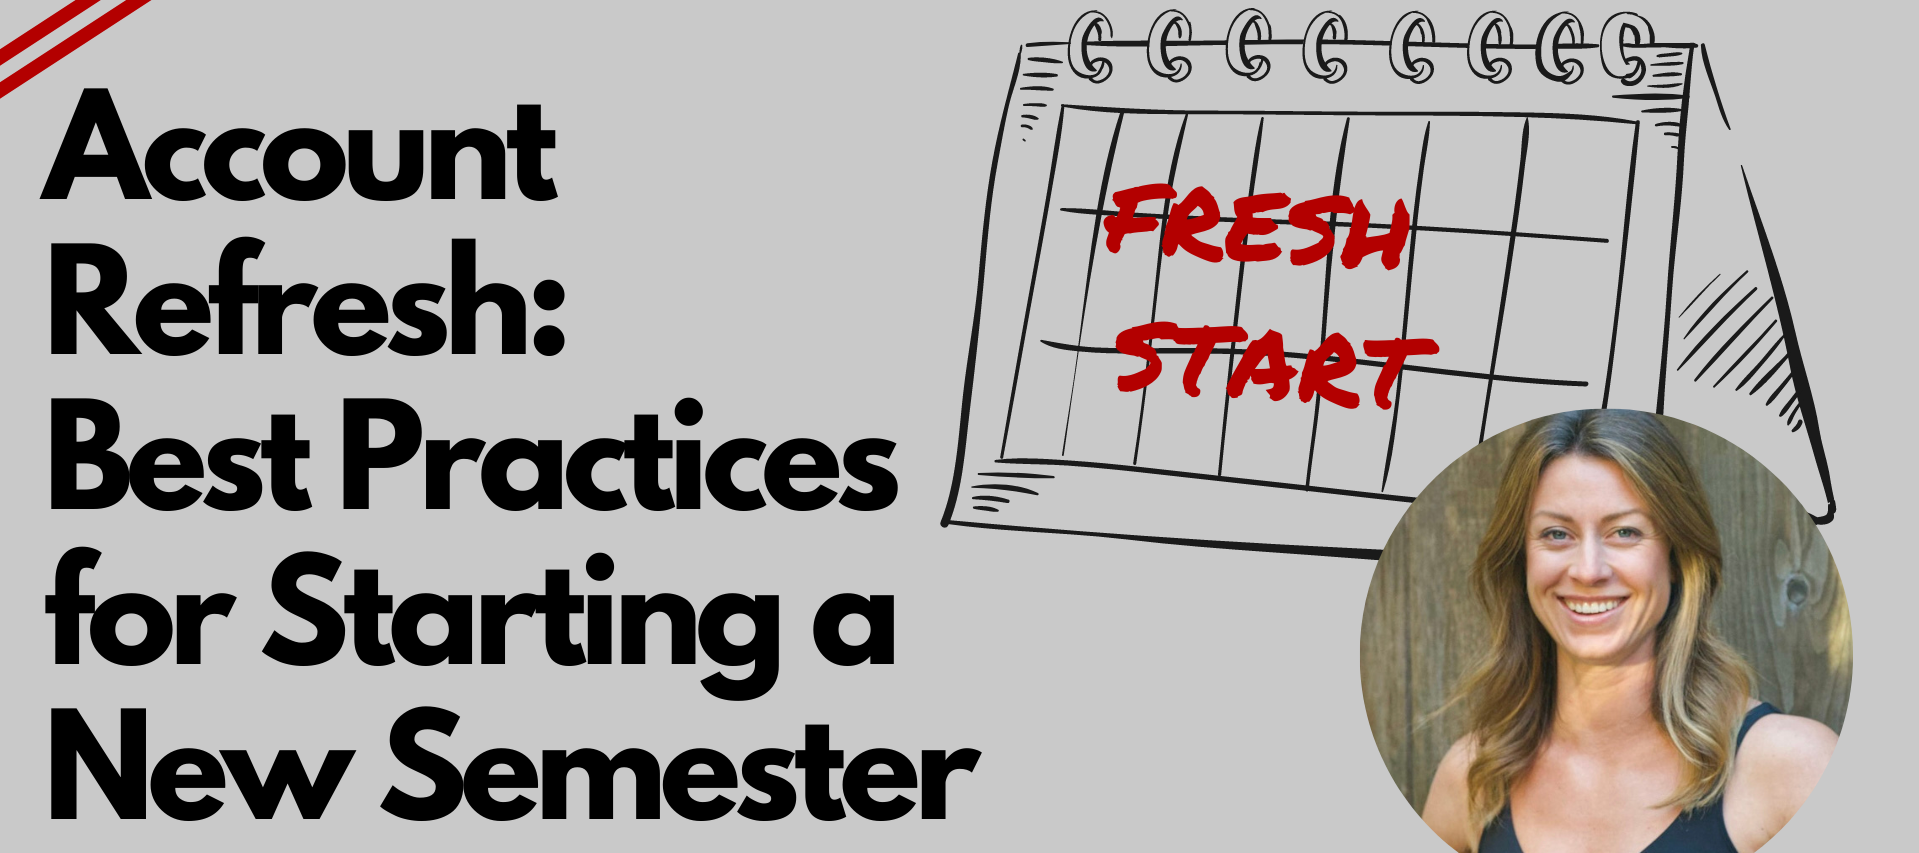 Account Refresh: Best Practices for Starting a New Semester